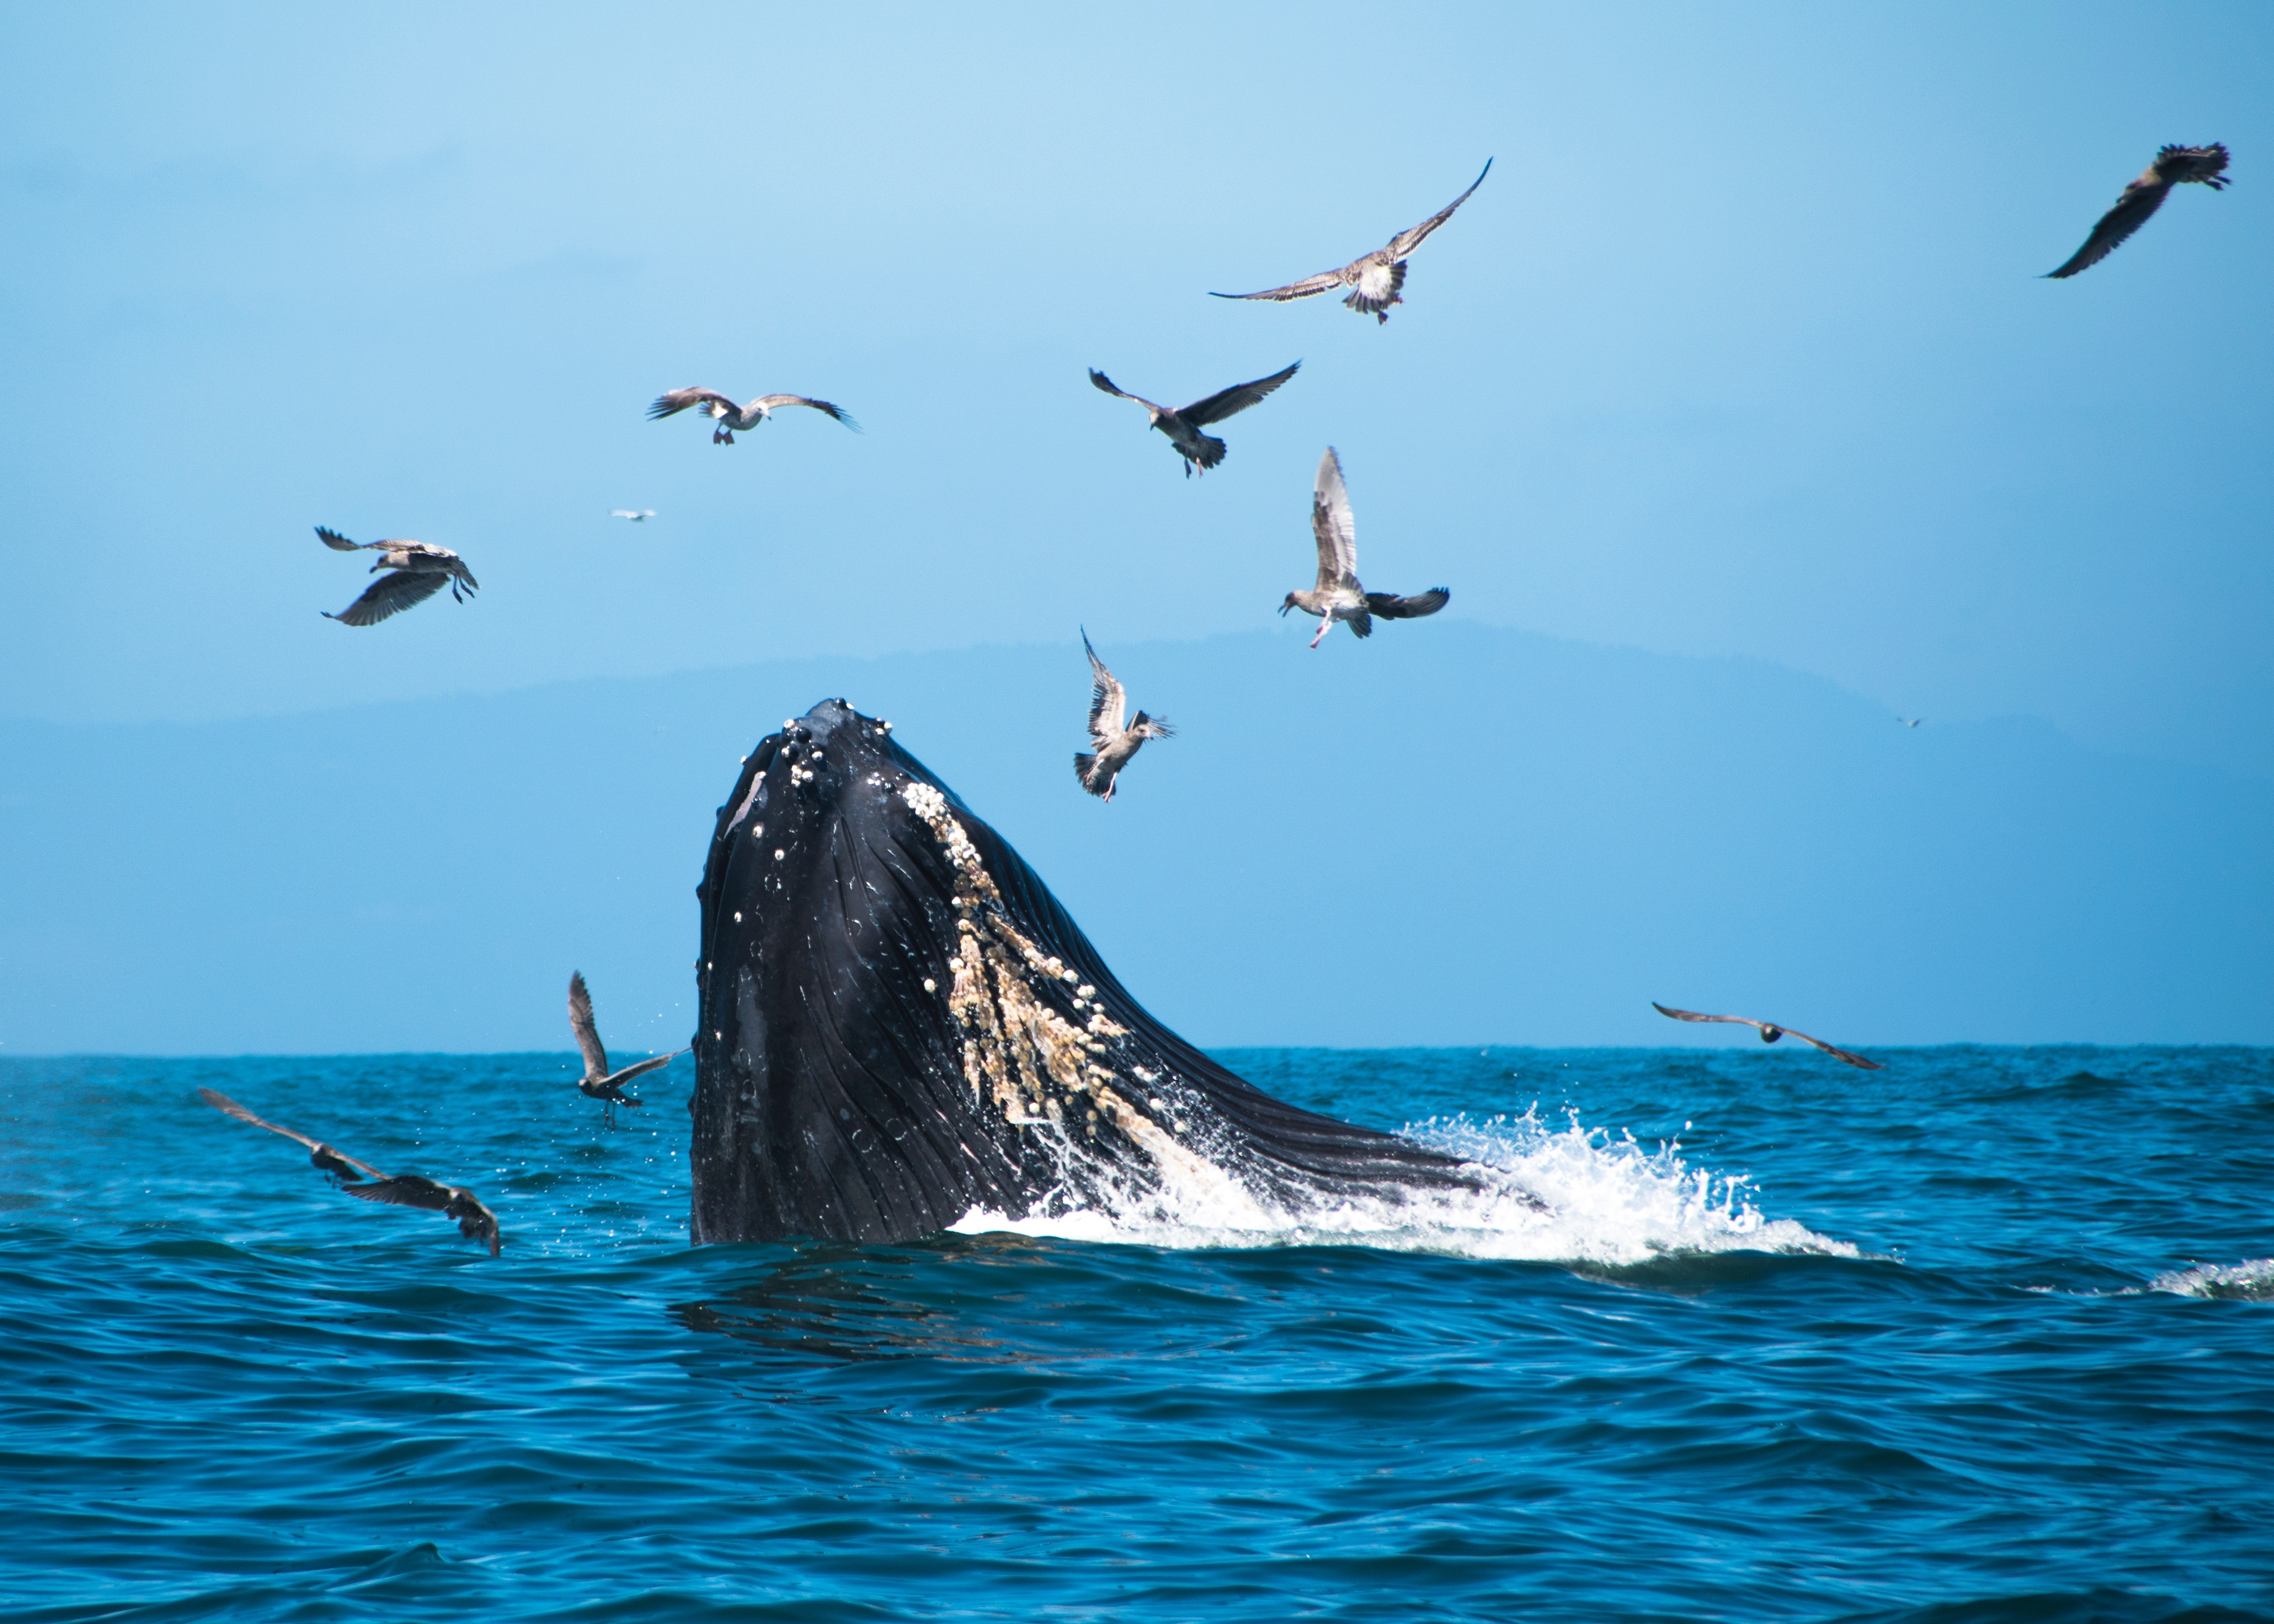 Whale breaching through water with birds flying overhead.